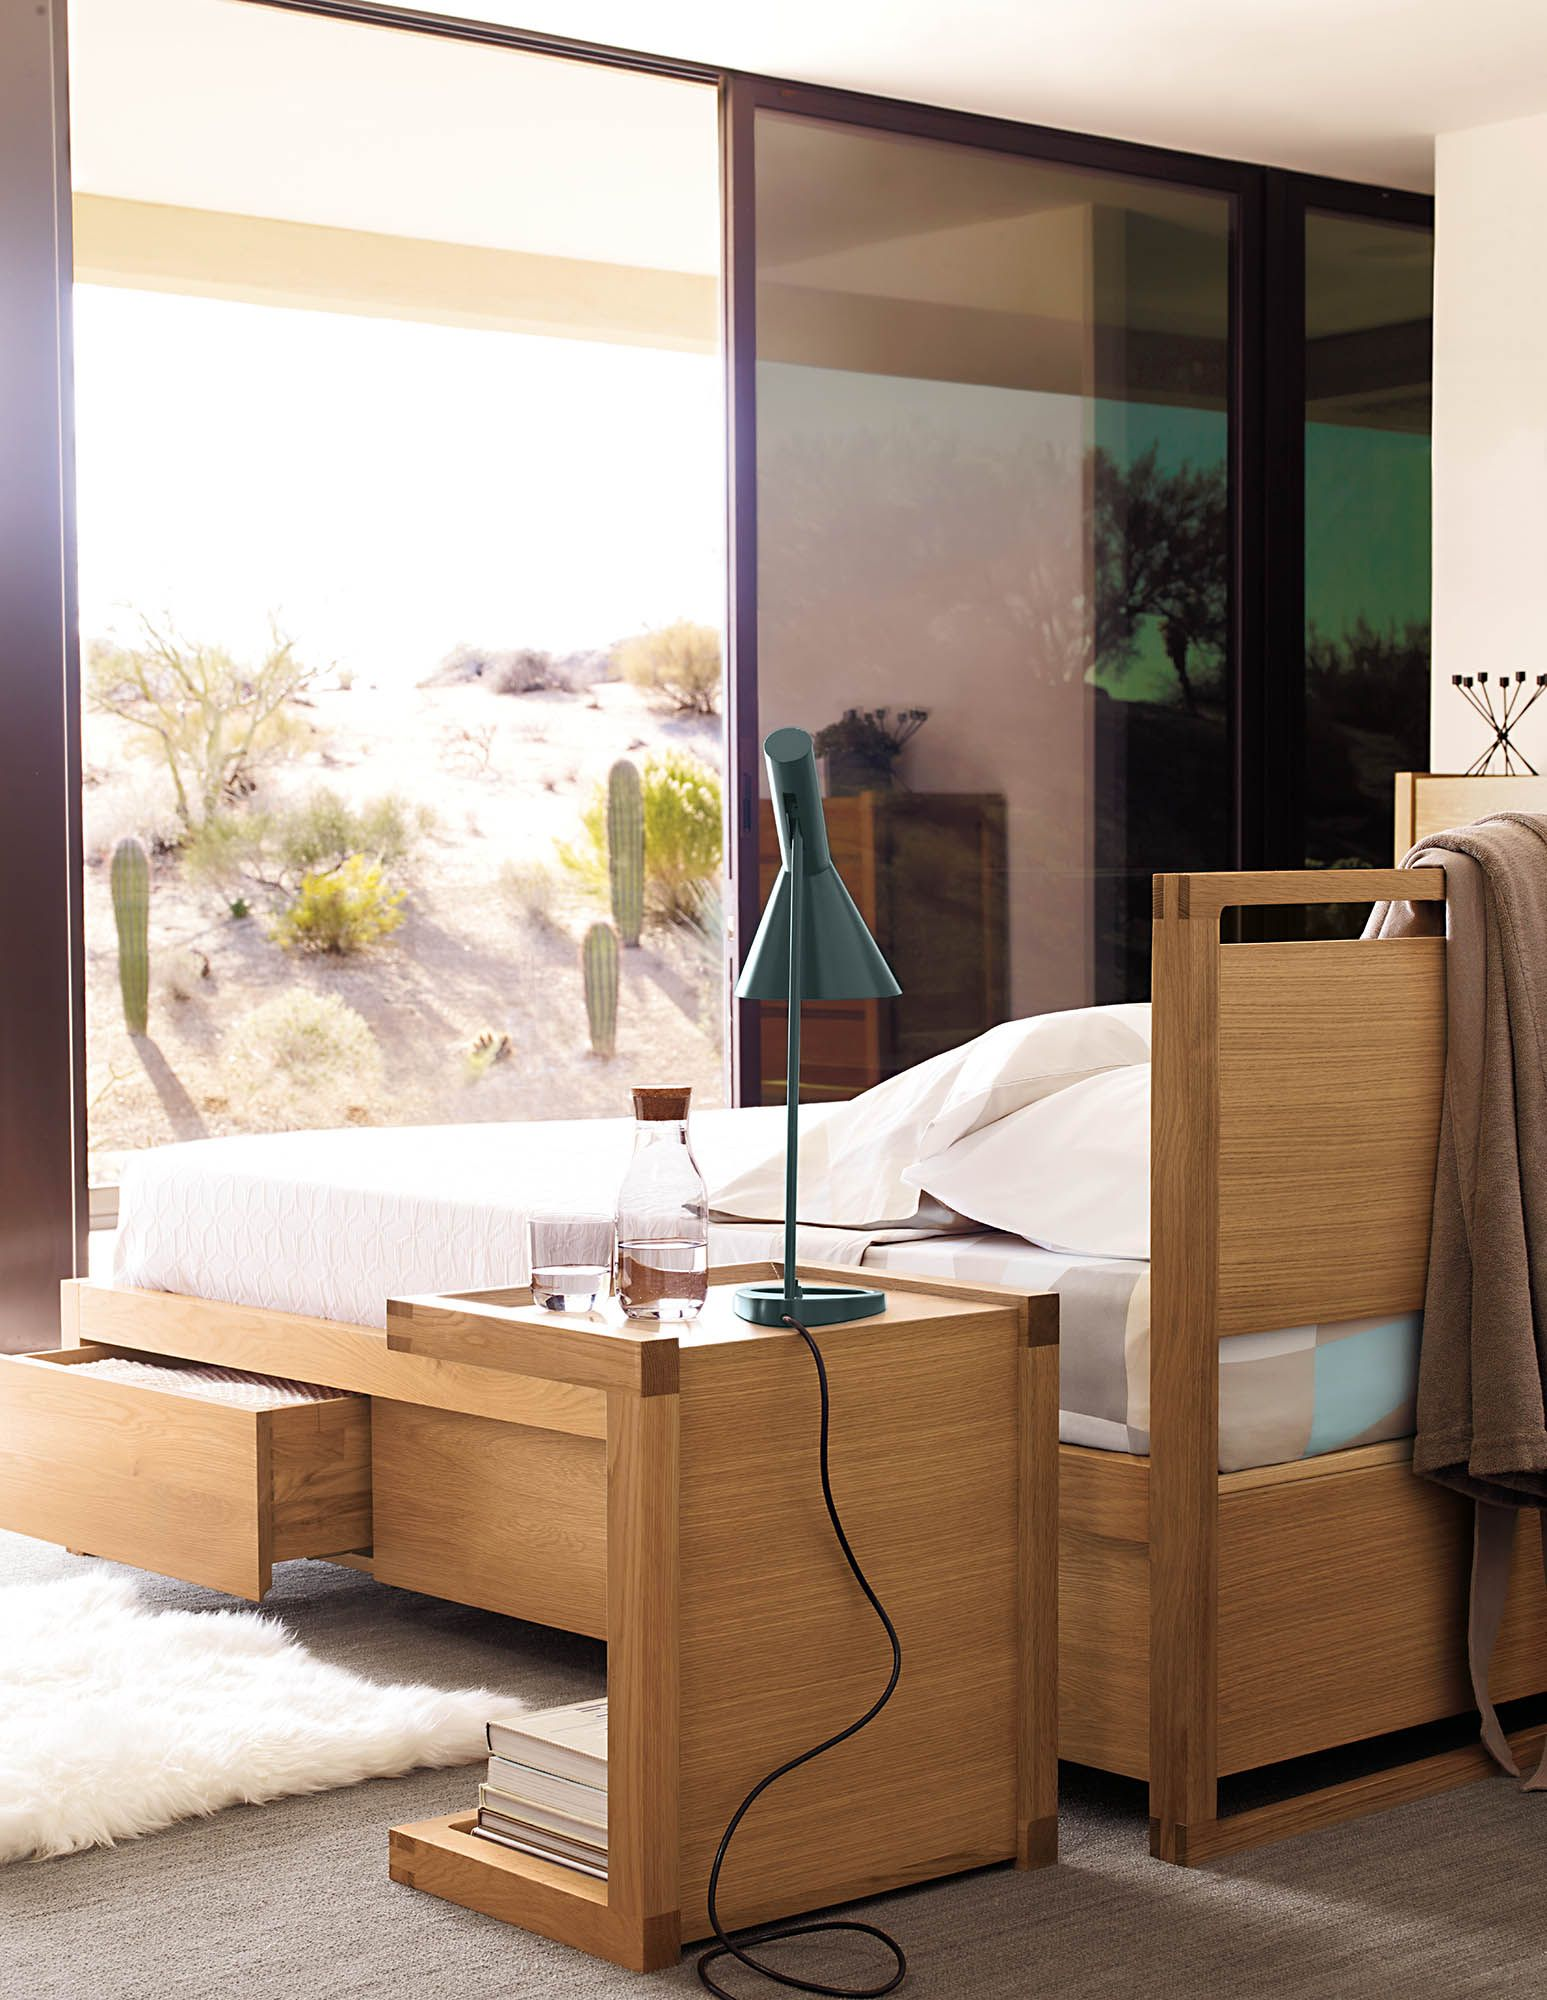 Best Keep Your Bedroom Simple And Clean Matera Bedroom 400 x 300